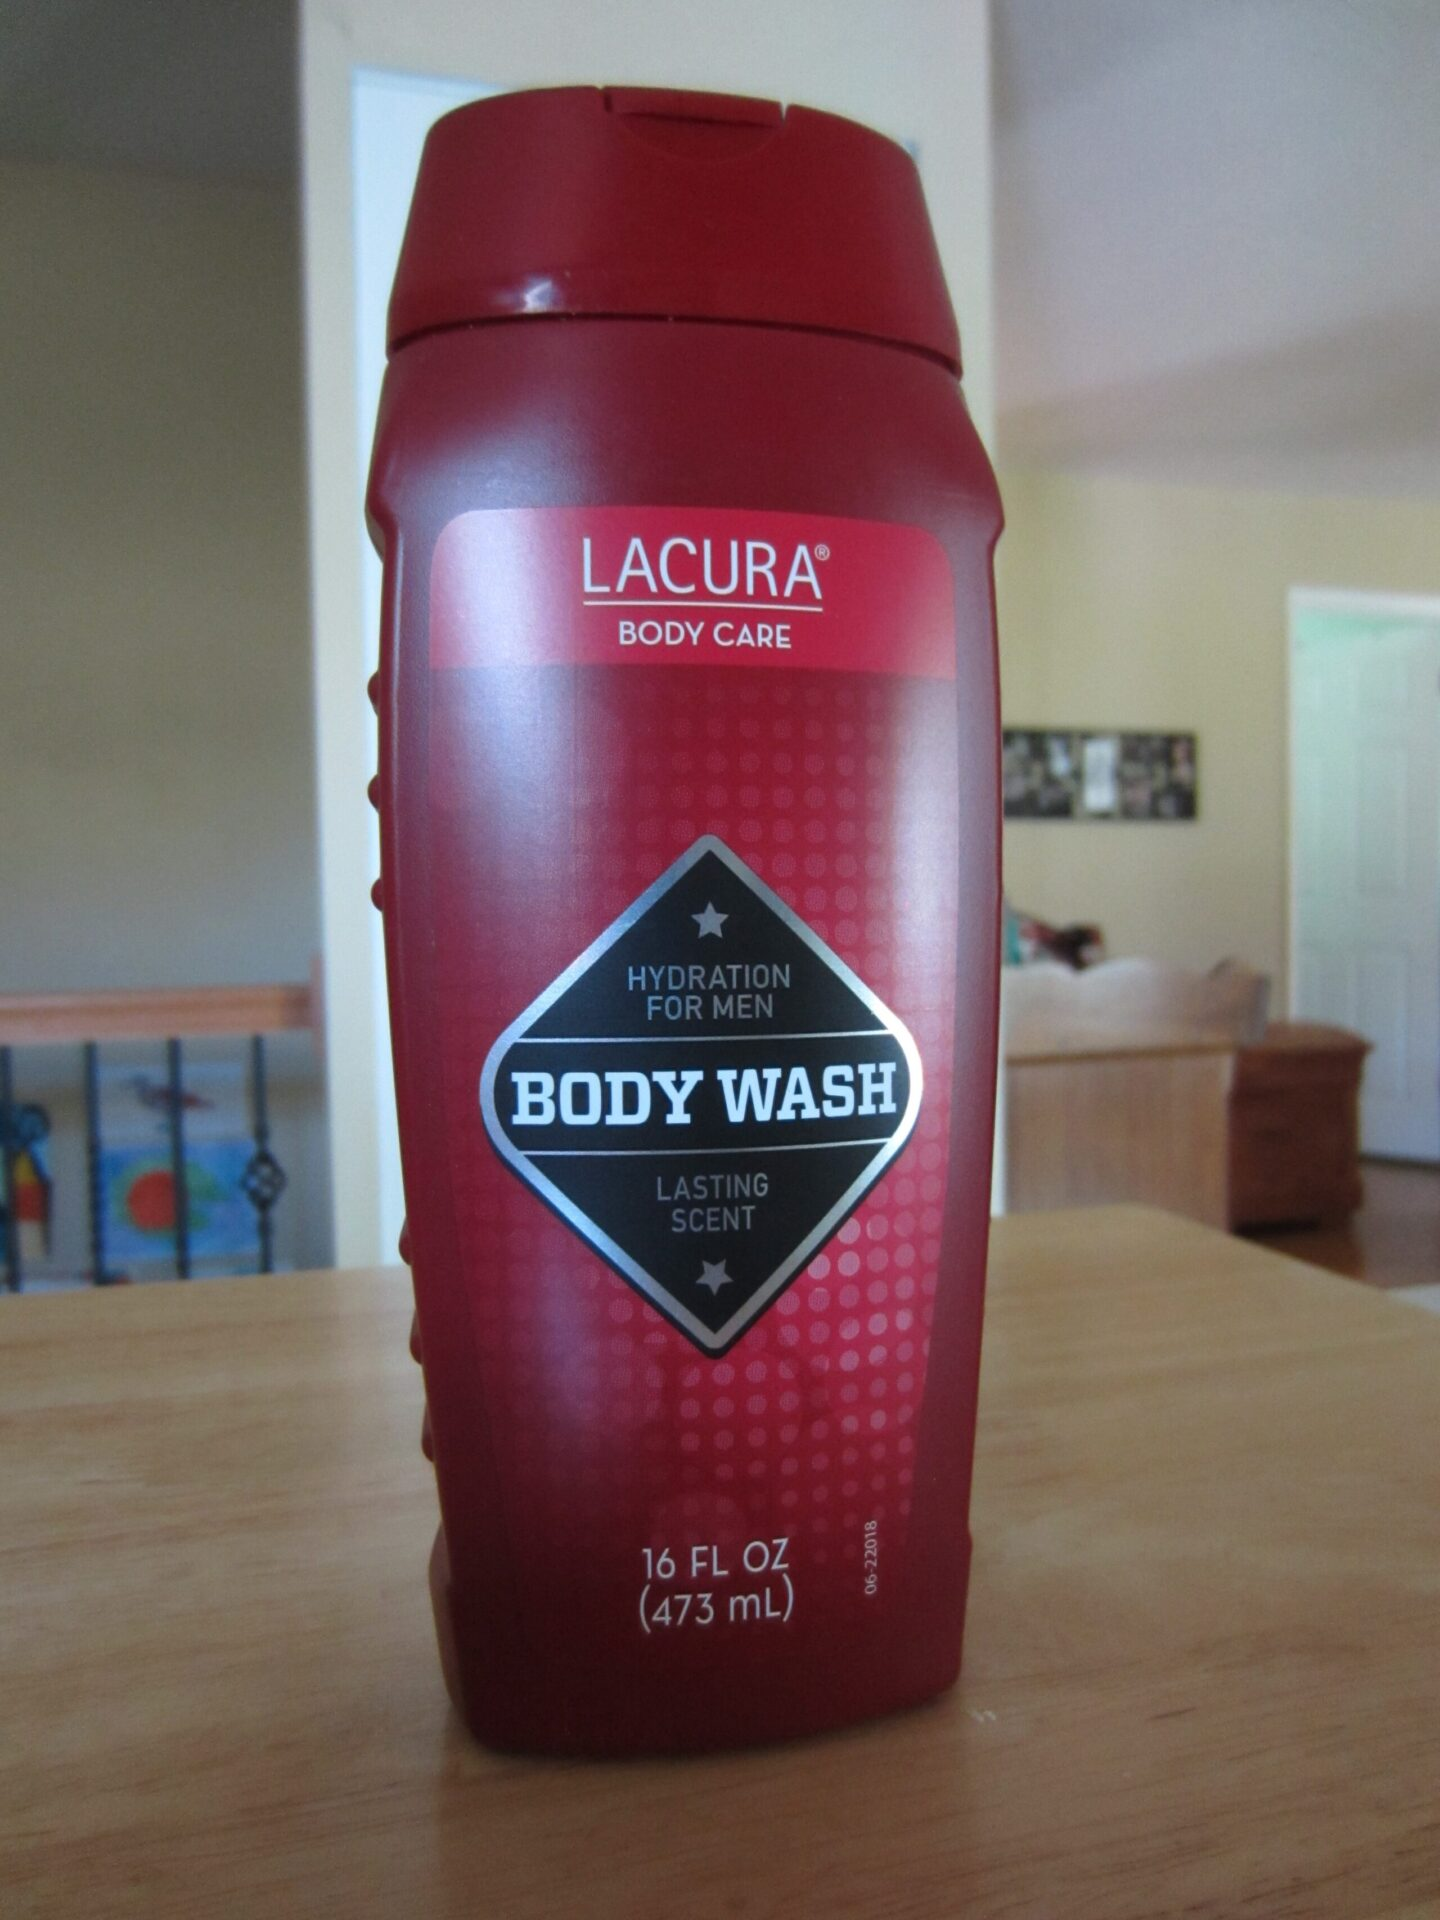 Aldi Lotus Grill Lacura Men S Body Wash Aldi Reviewer